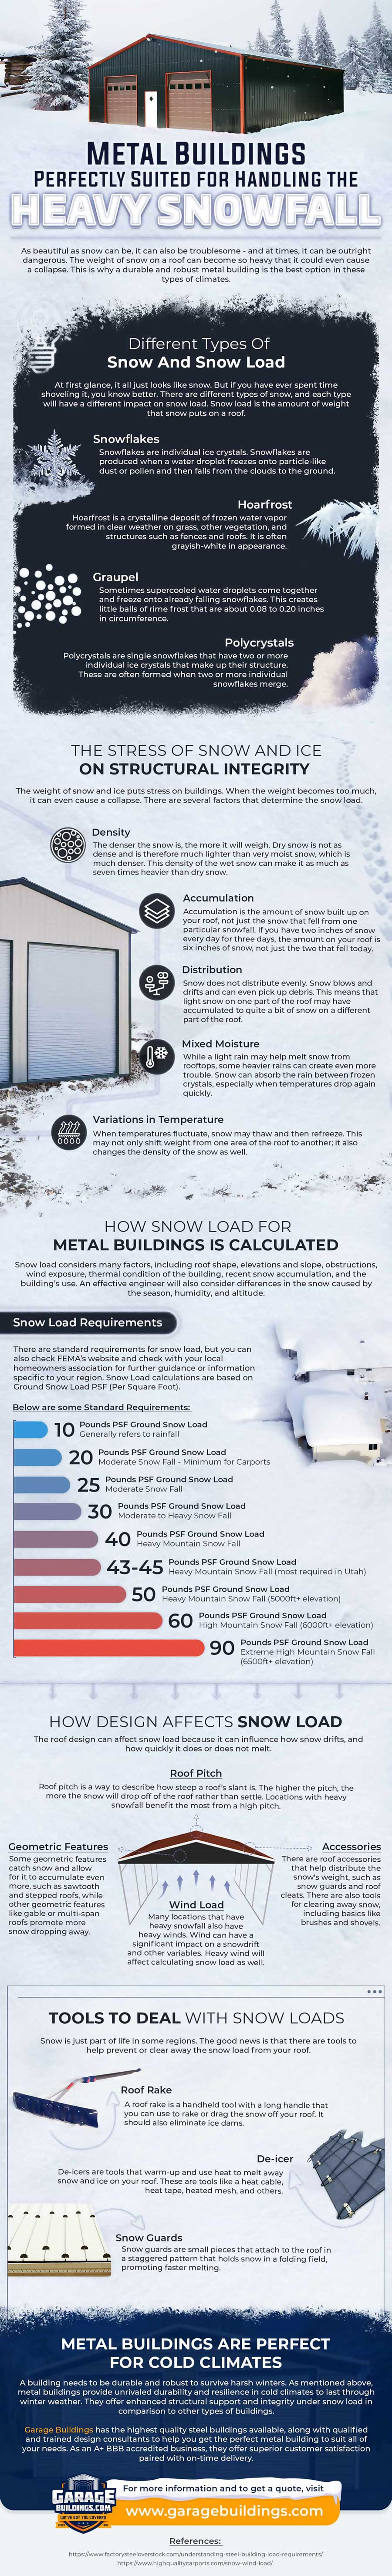 metal buildings perfectly suited for handling the heavy snowfall